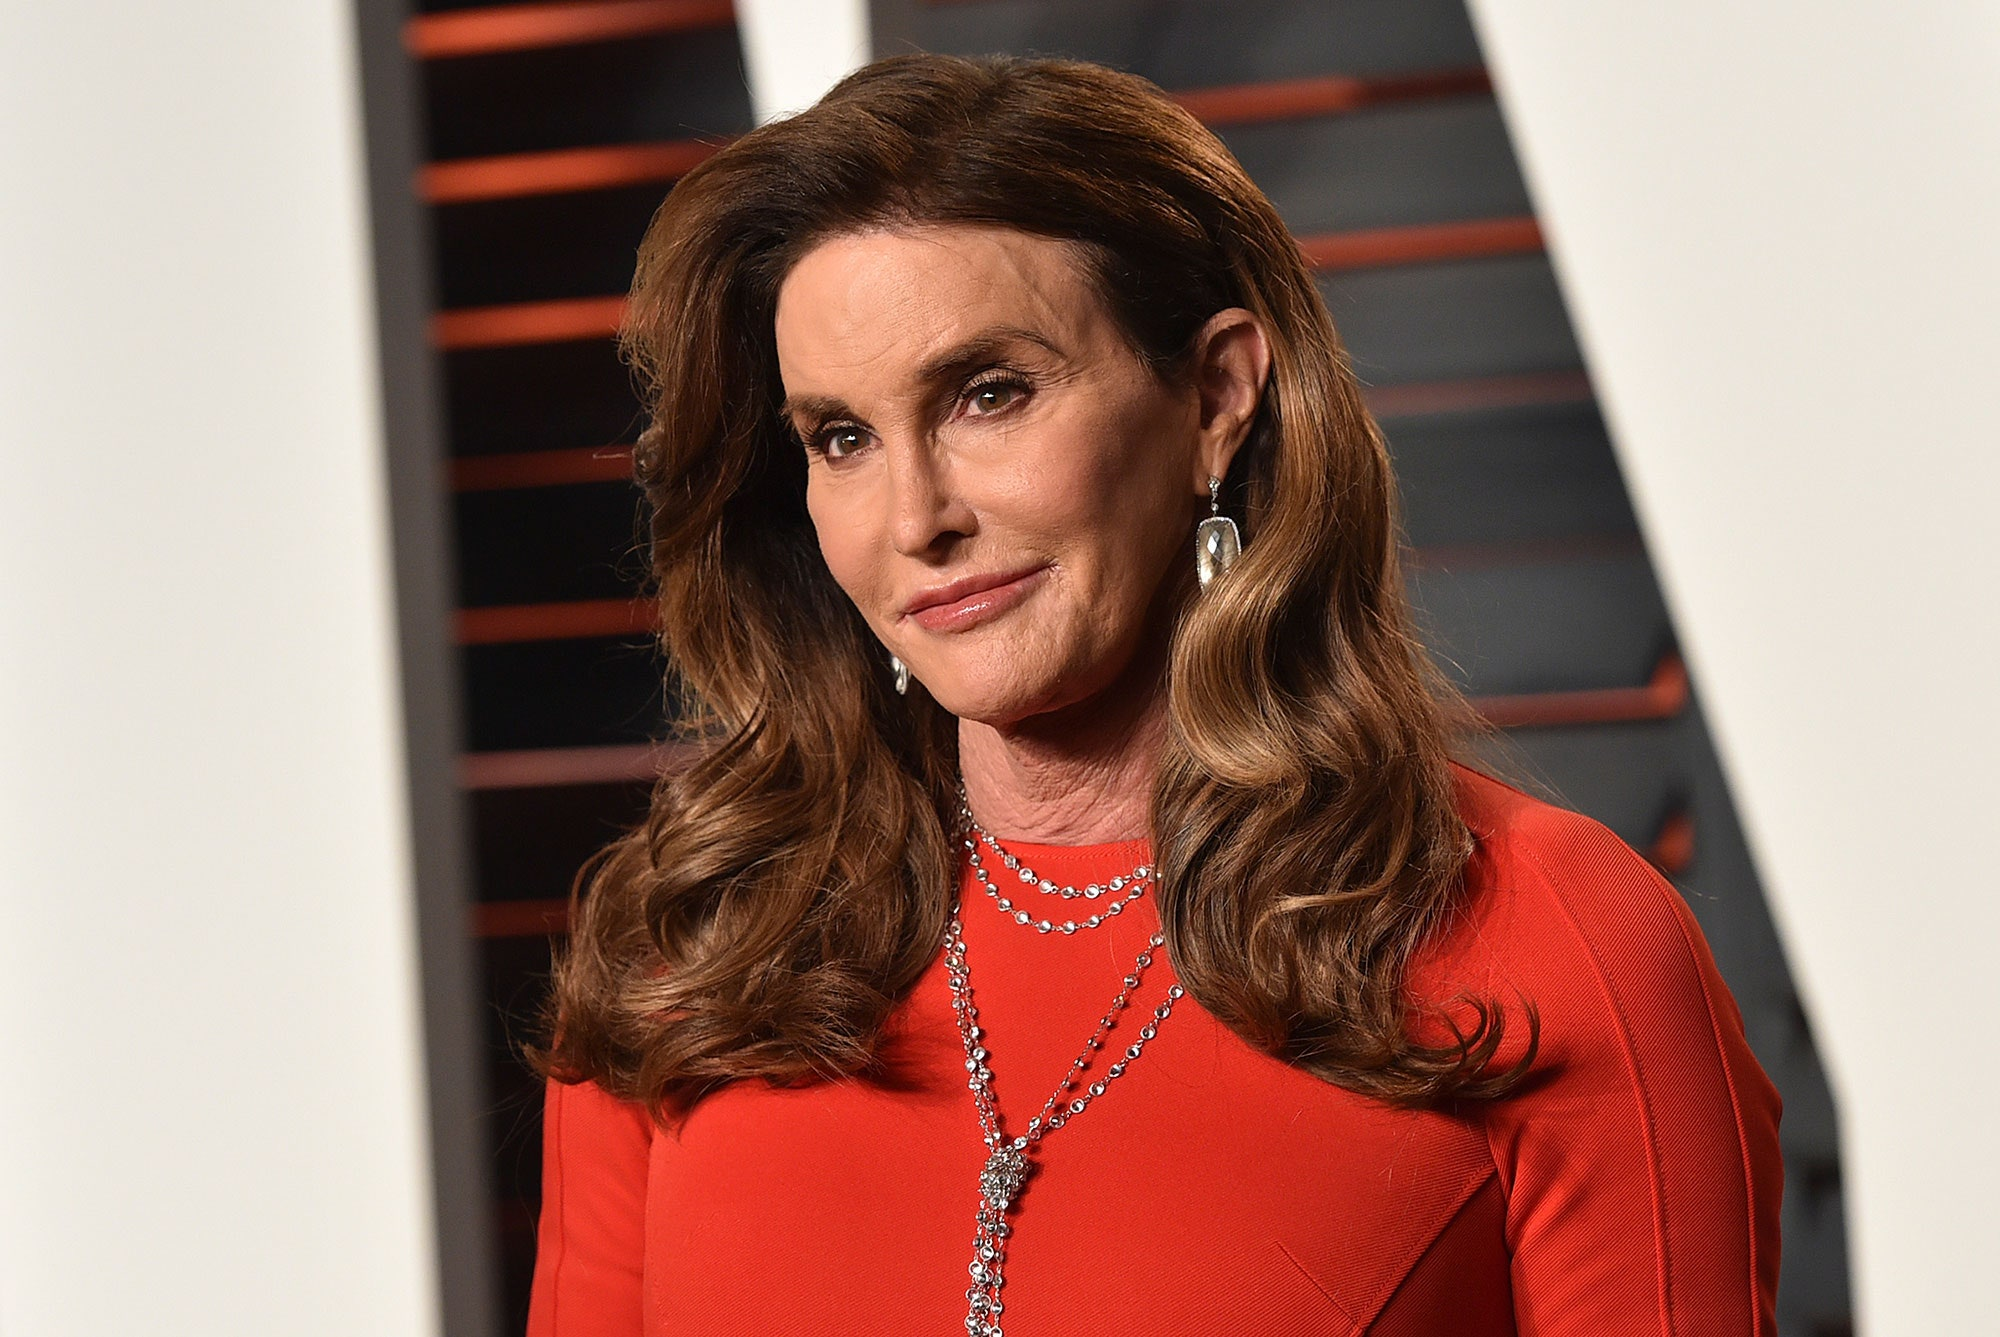 caitlyn-jenner-gets-emotional-talking-about-kuwtk-ending-admits-shes-really-sad-about-it